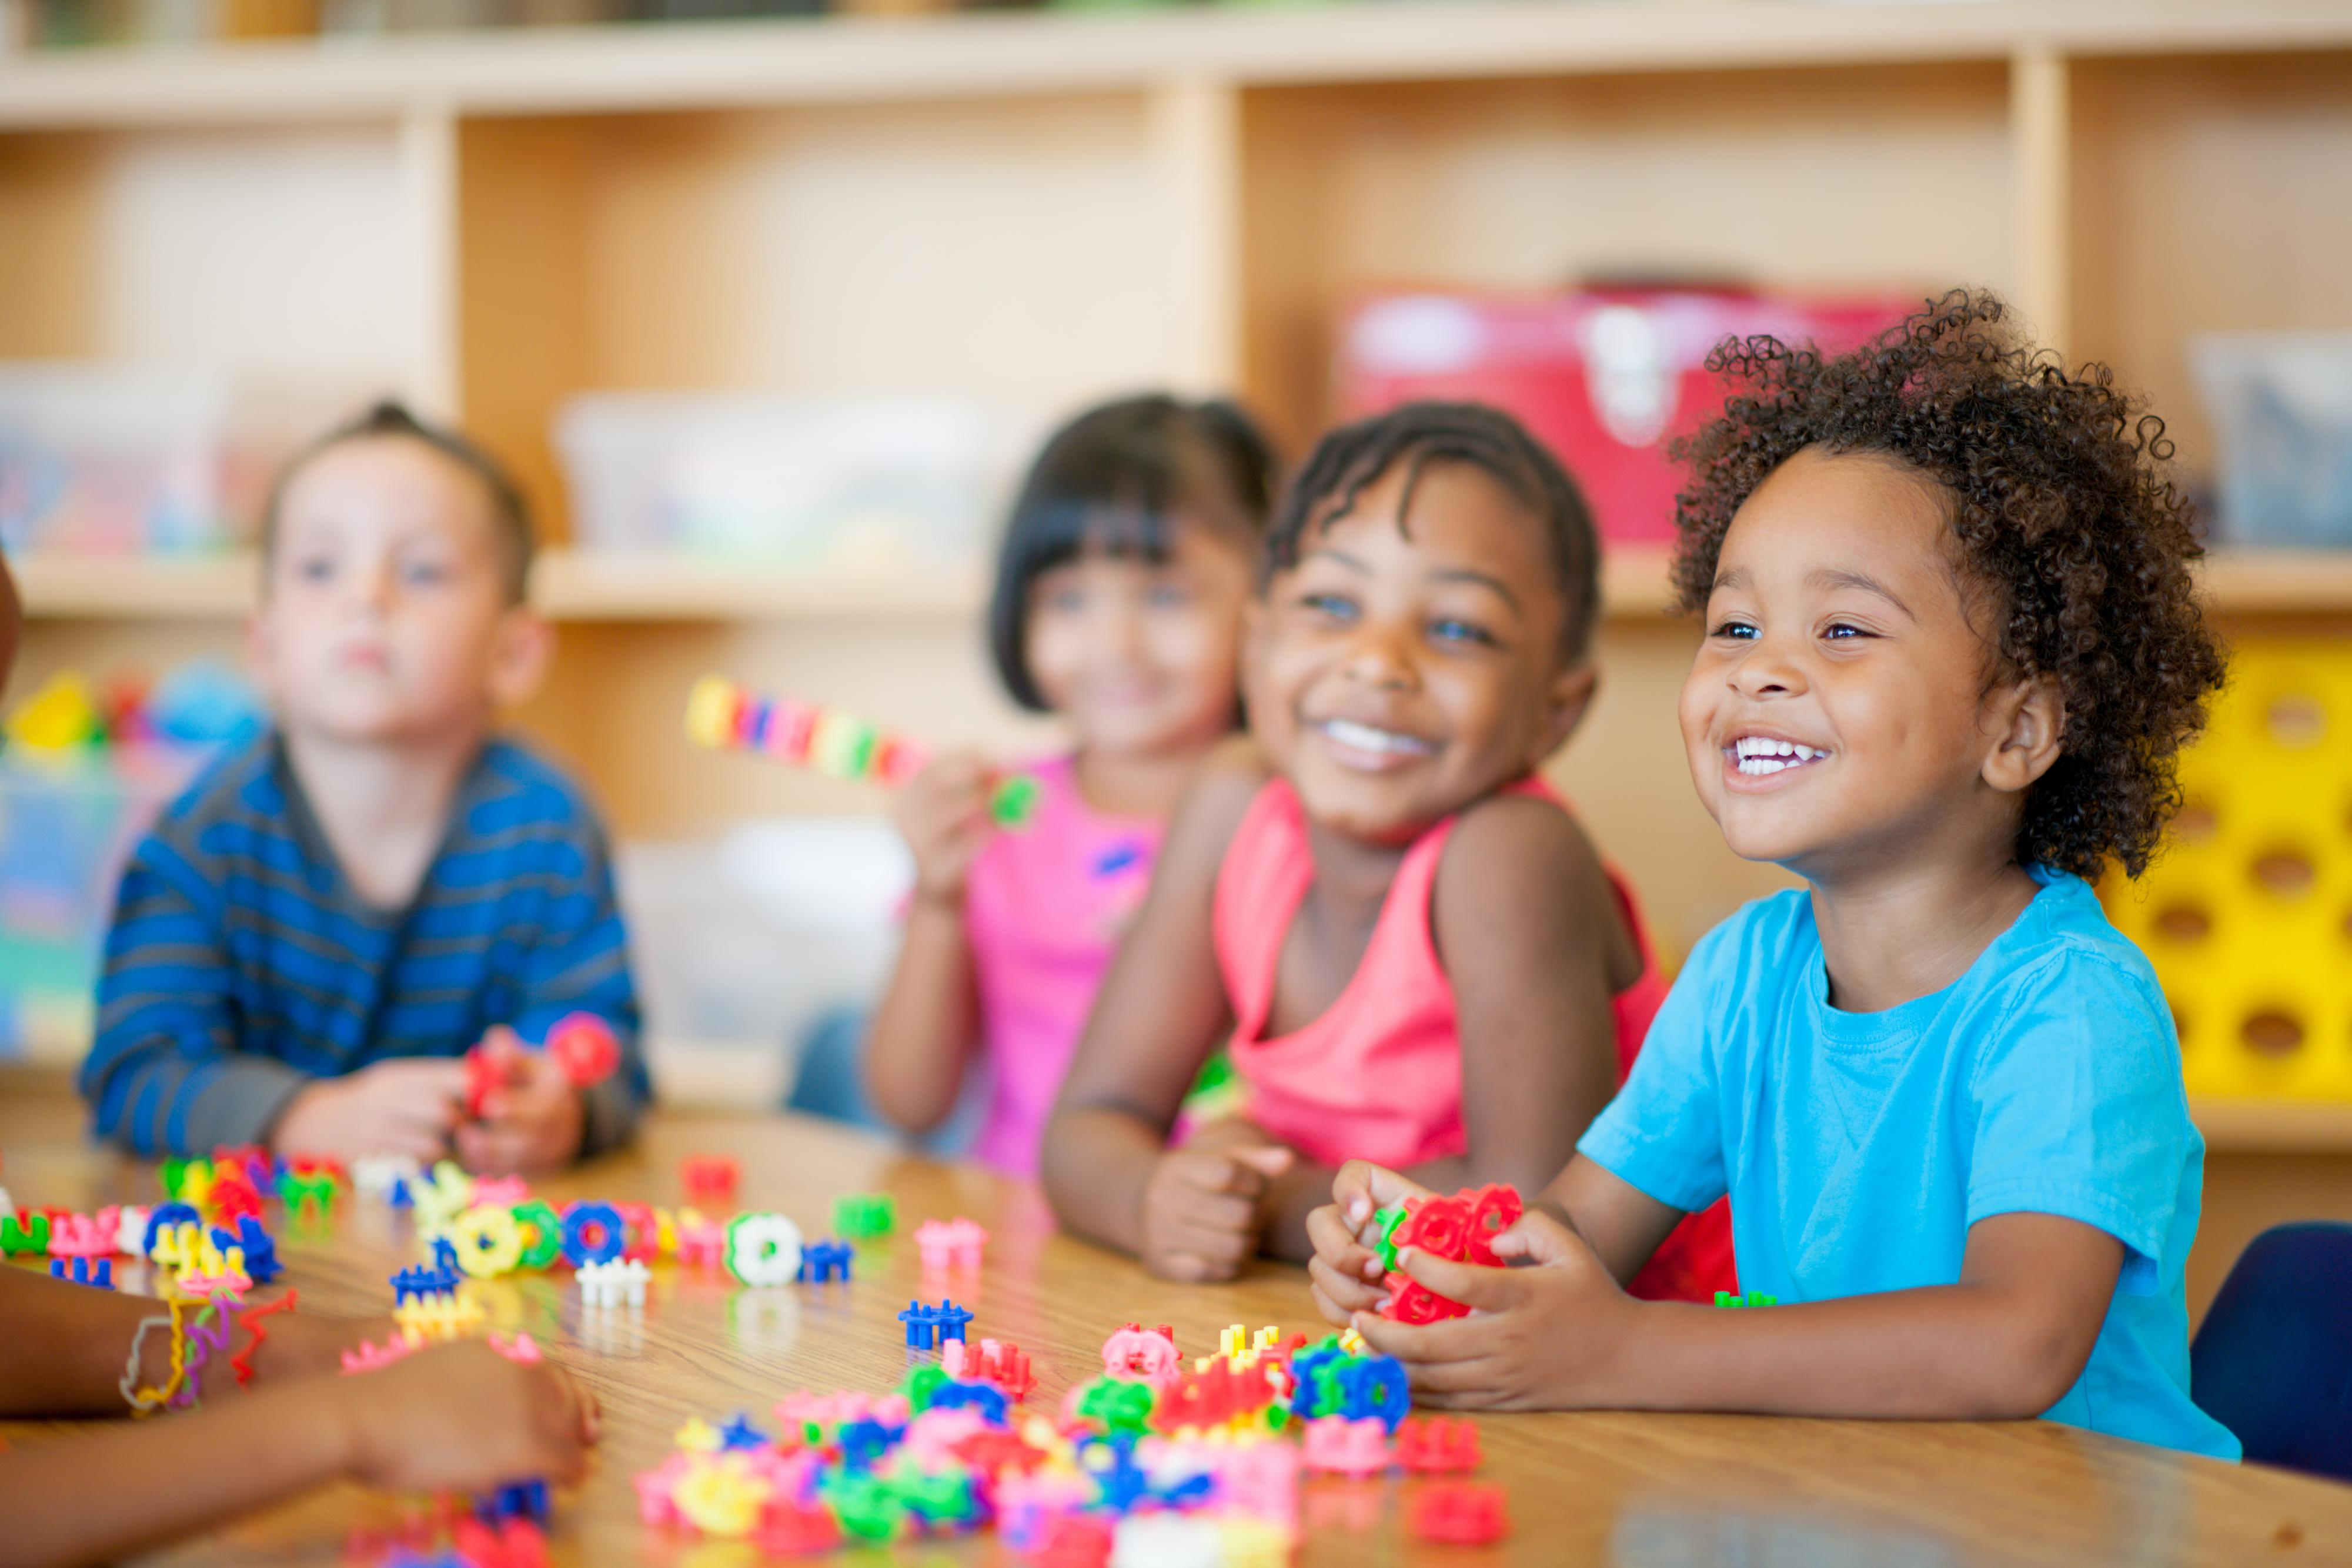 Children extend their curiosity as they play with manipulatives.